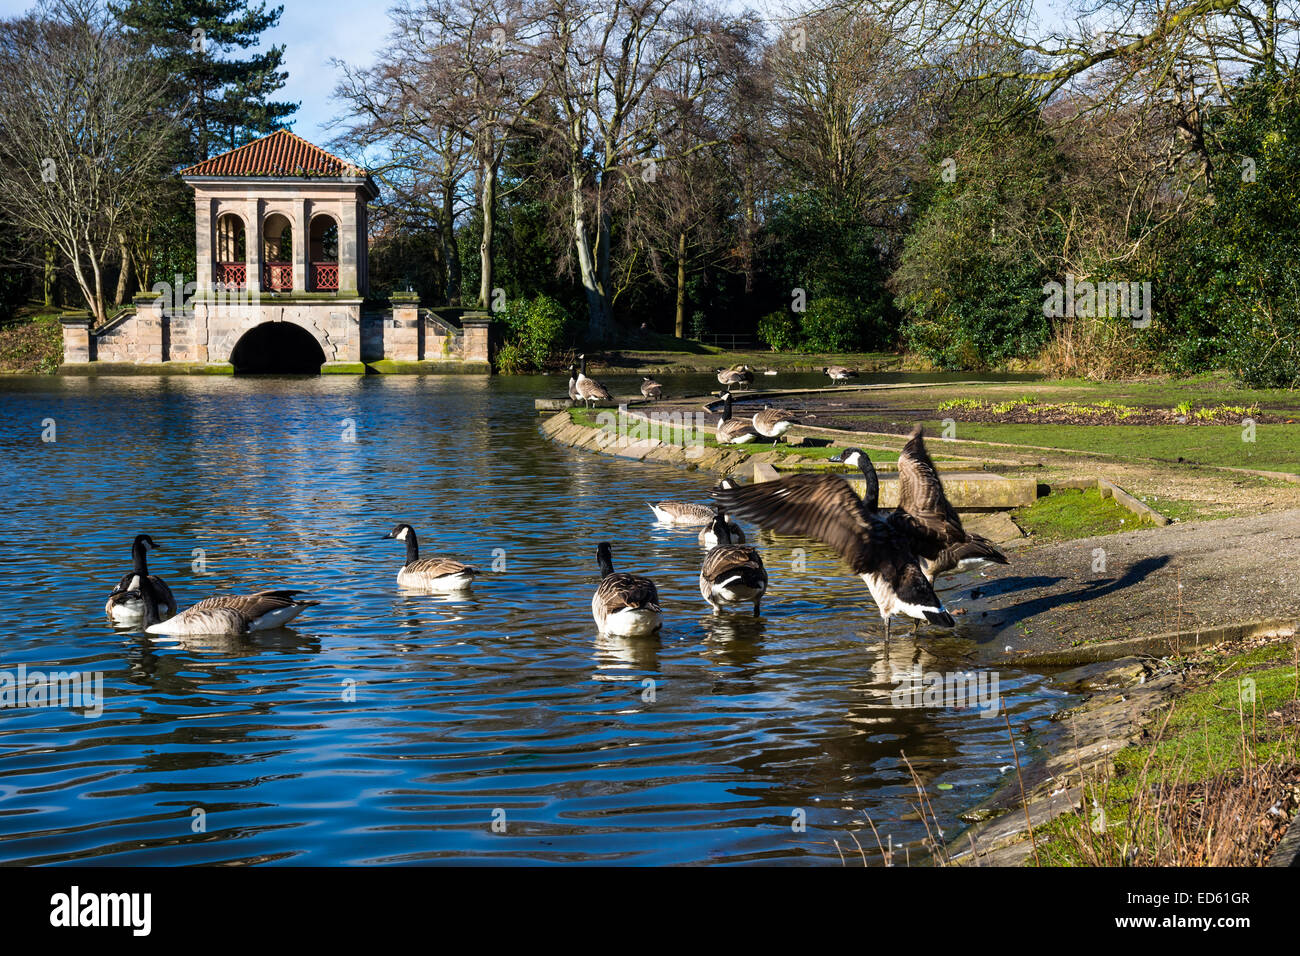 This Boathouse in Birkenhead Park, Wirral, UK was originally designed by the Liverpool architect Lewis Hornblower. - Stock Image